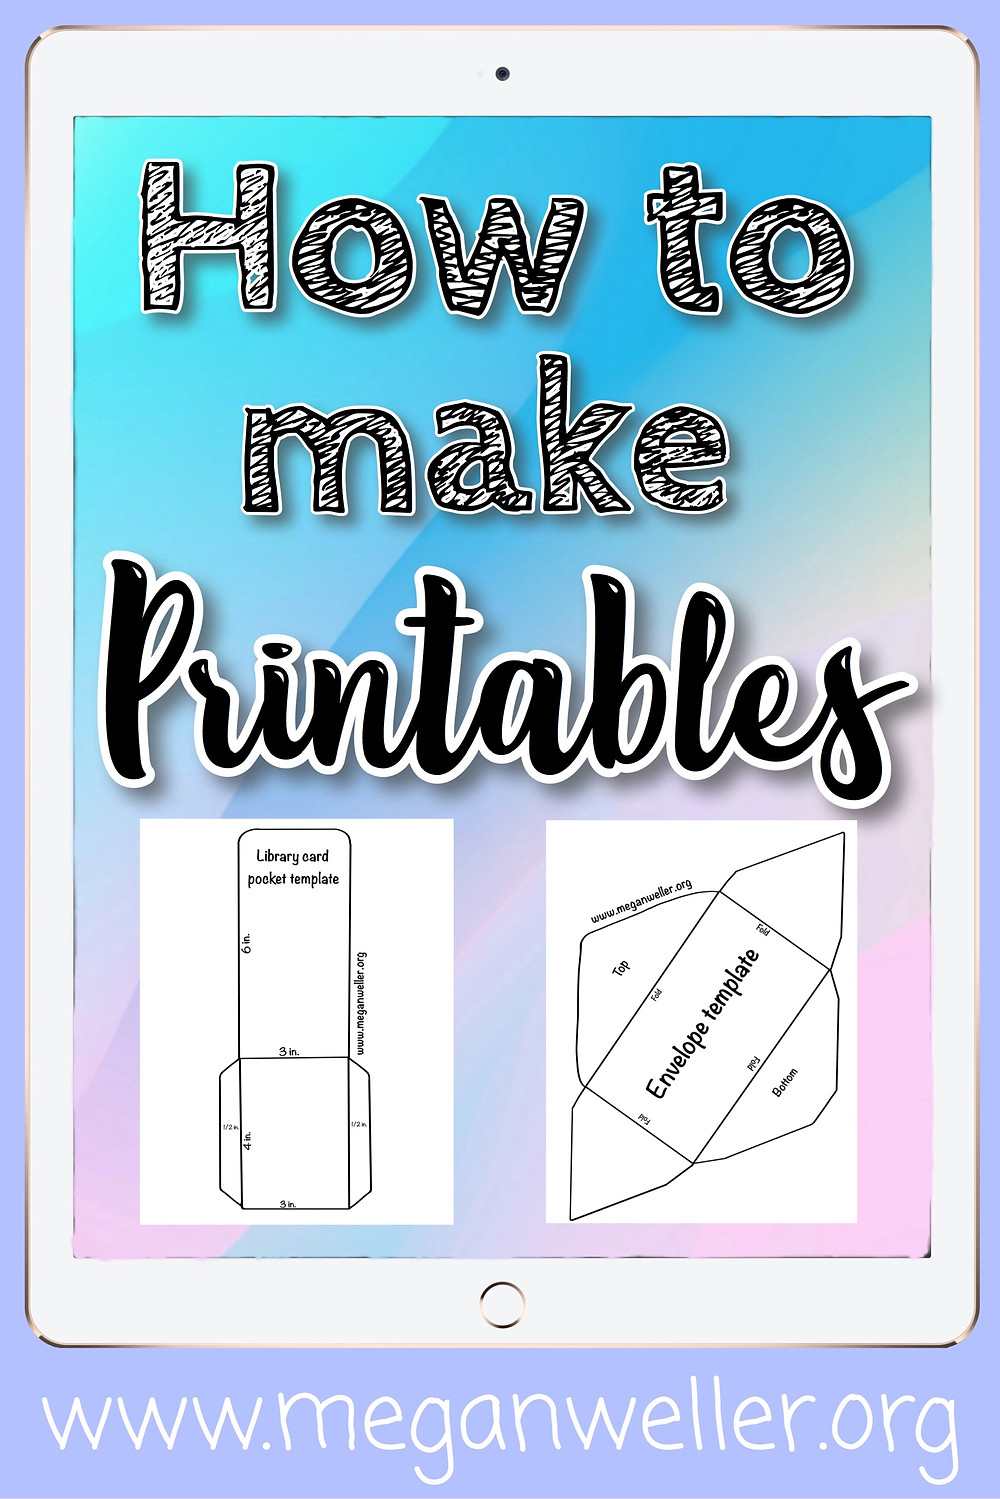 How to make printable for your website/blog/YouTube channel